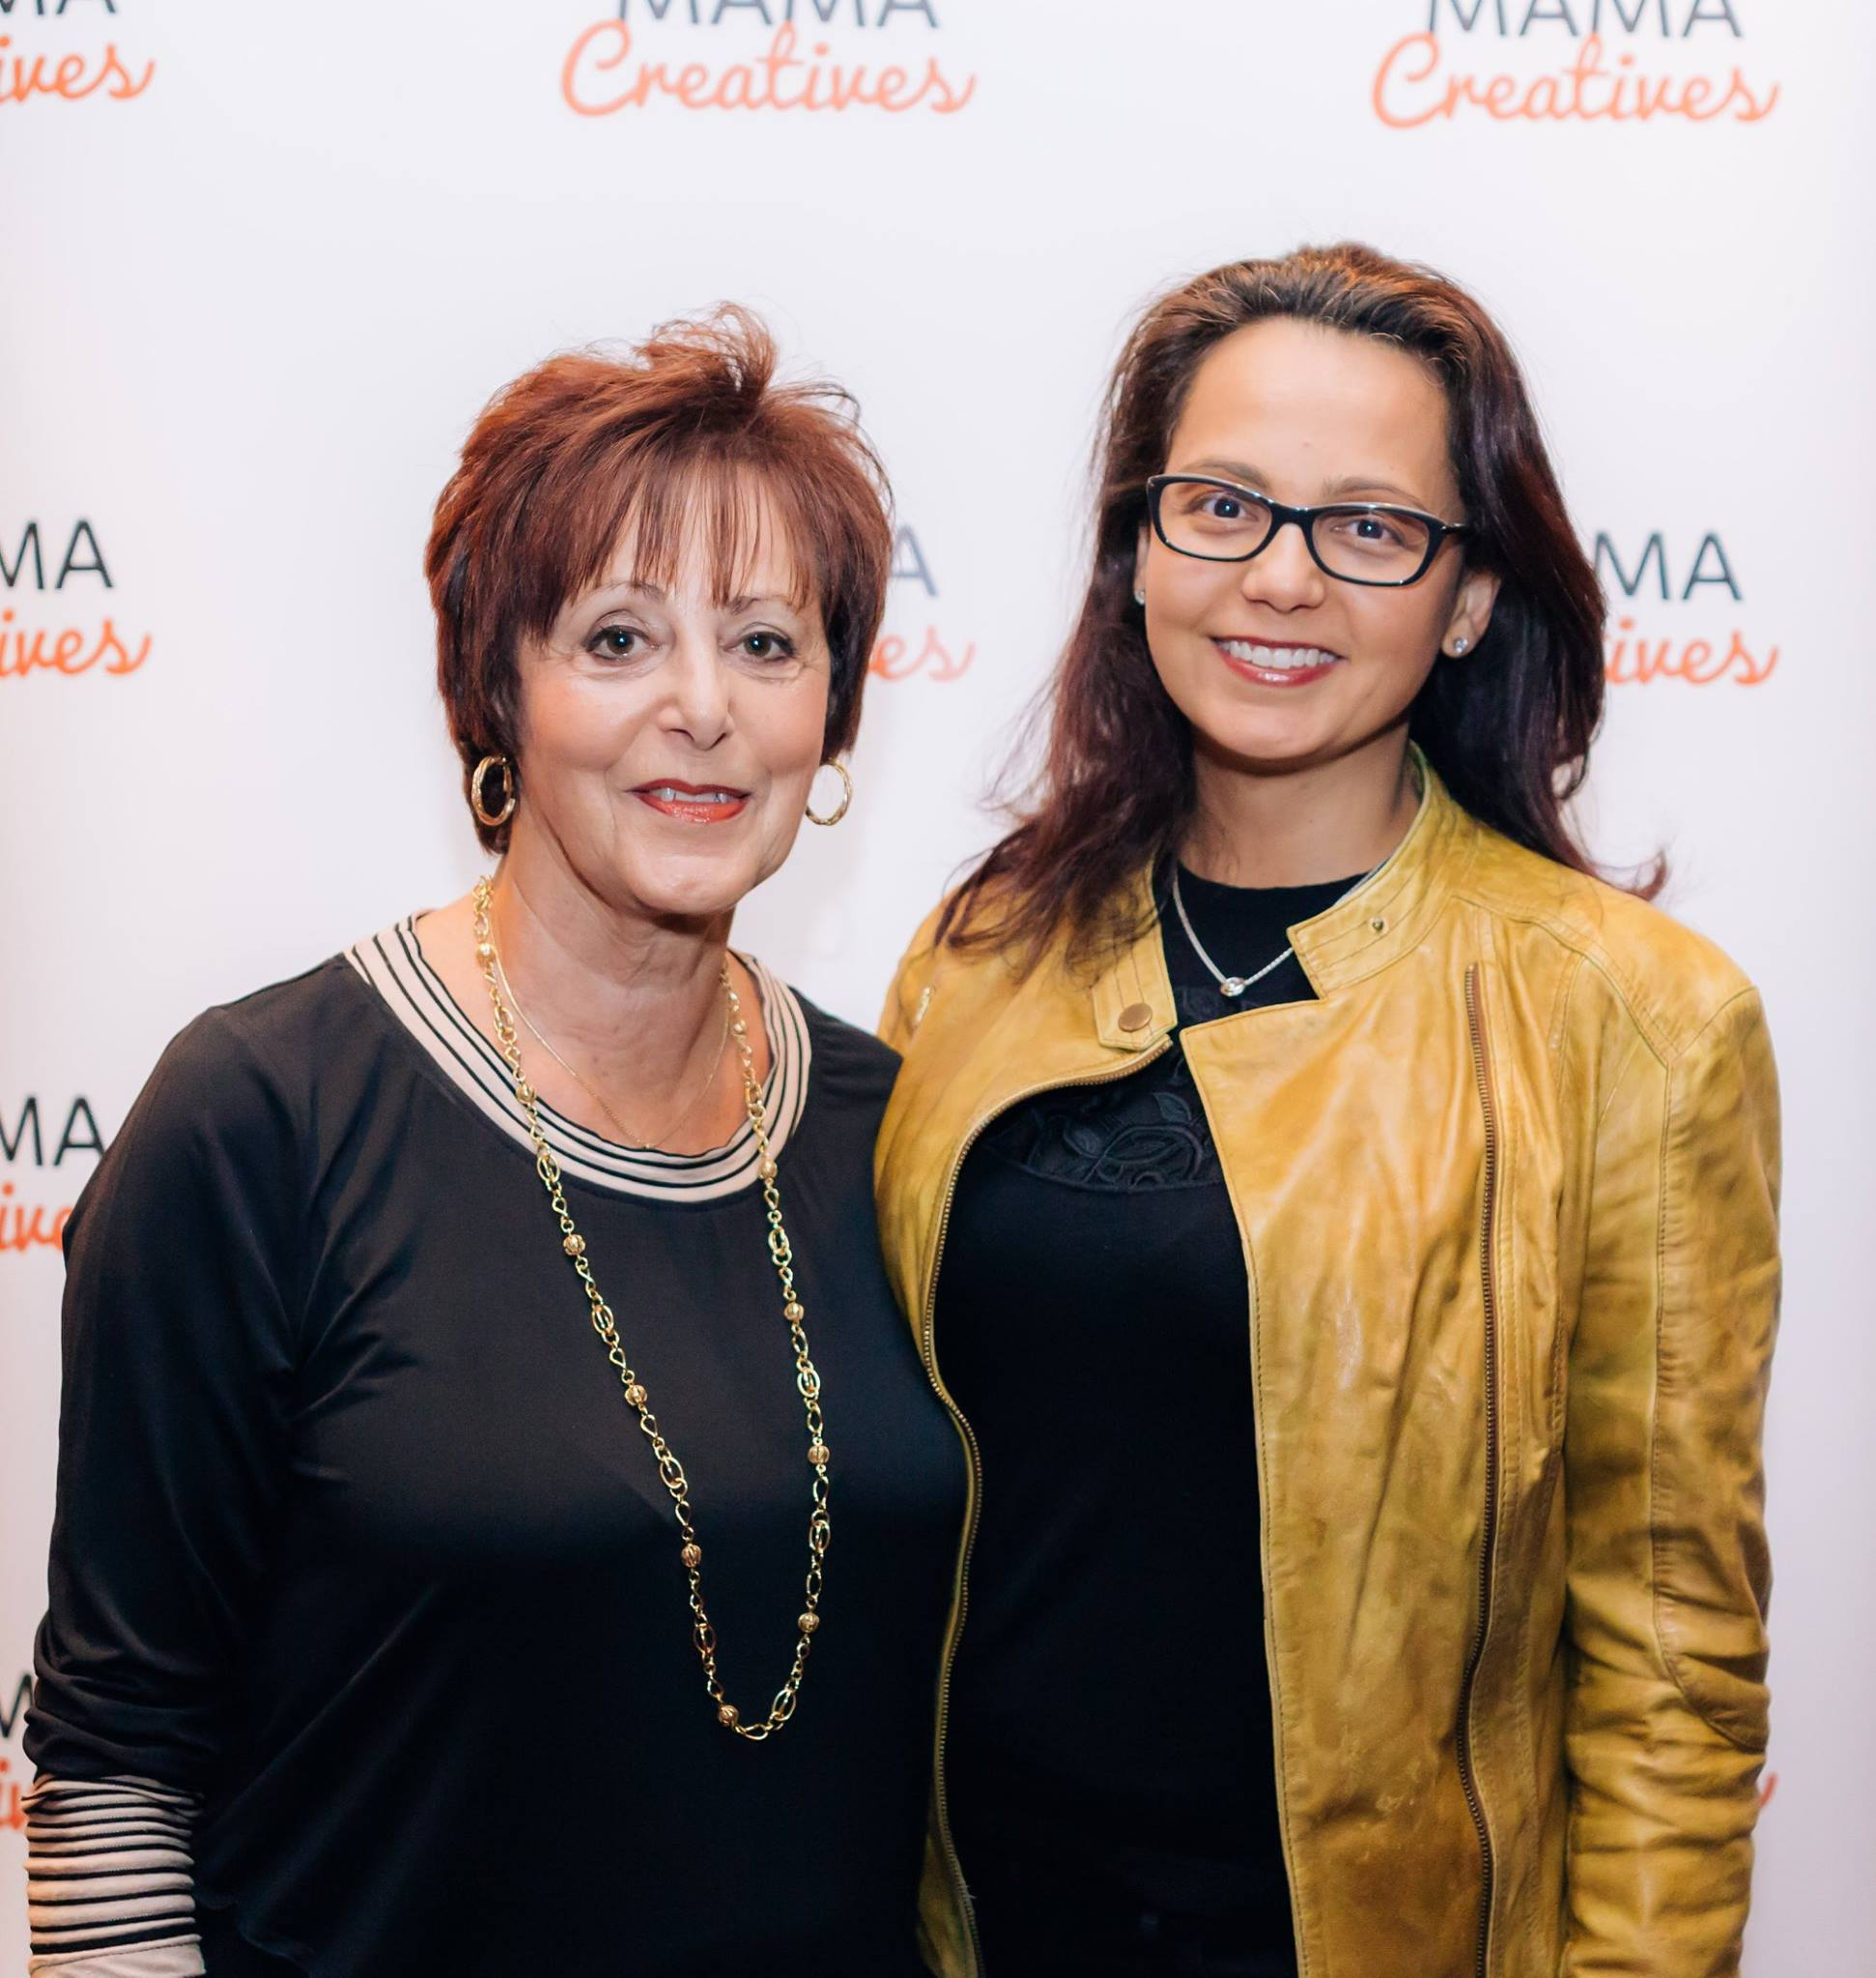 Beautiful mother/daughter mamas who enjoyed our inspiring Mama Creatives Mother's Day Celebration.